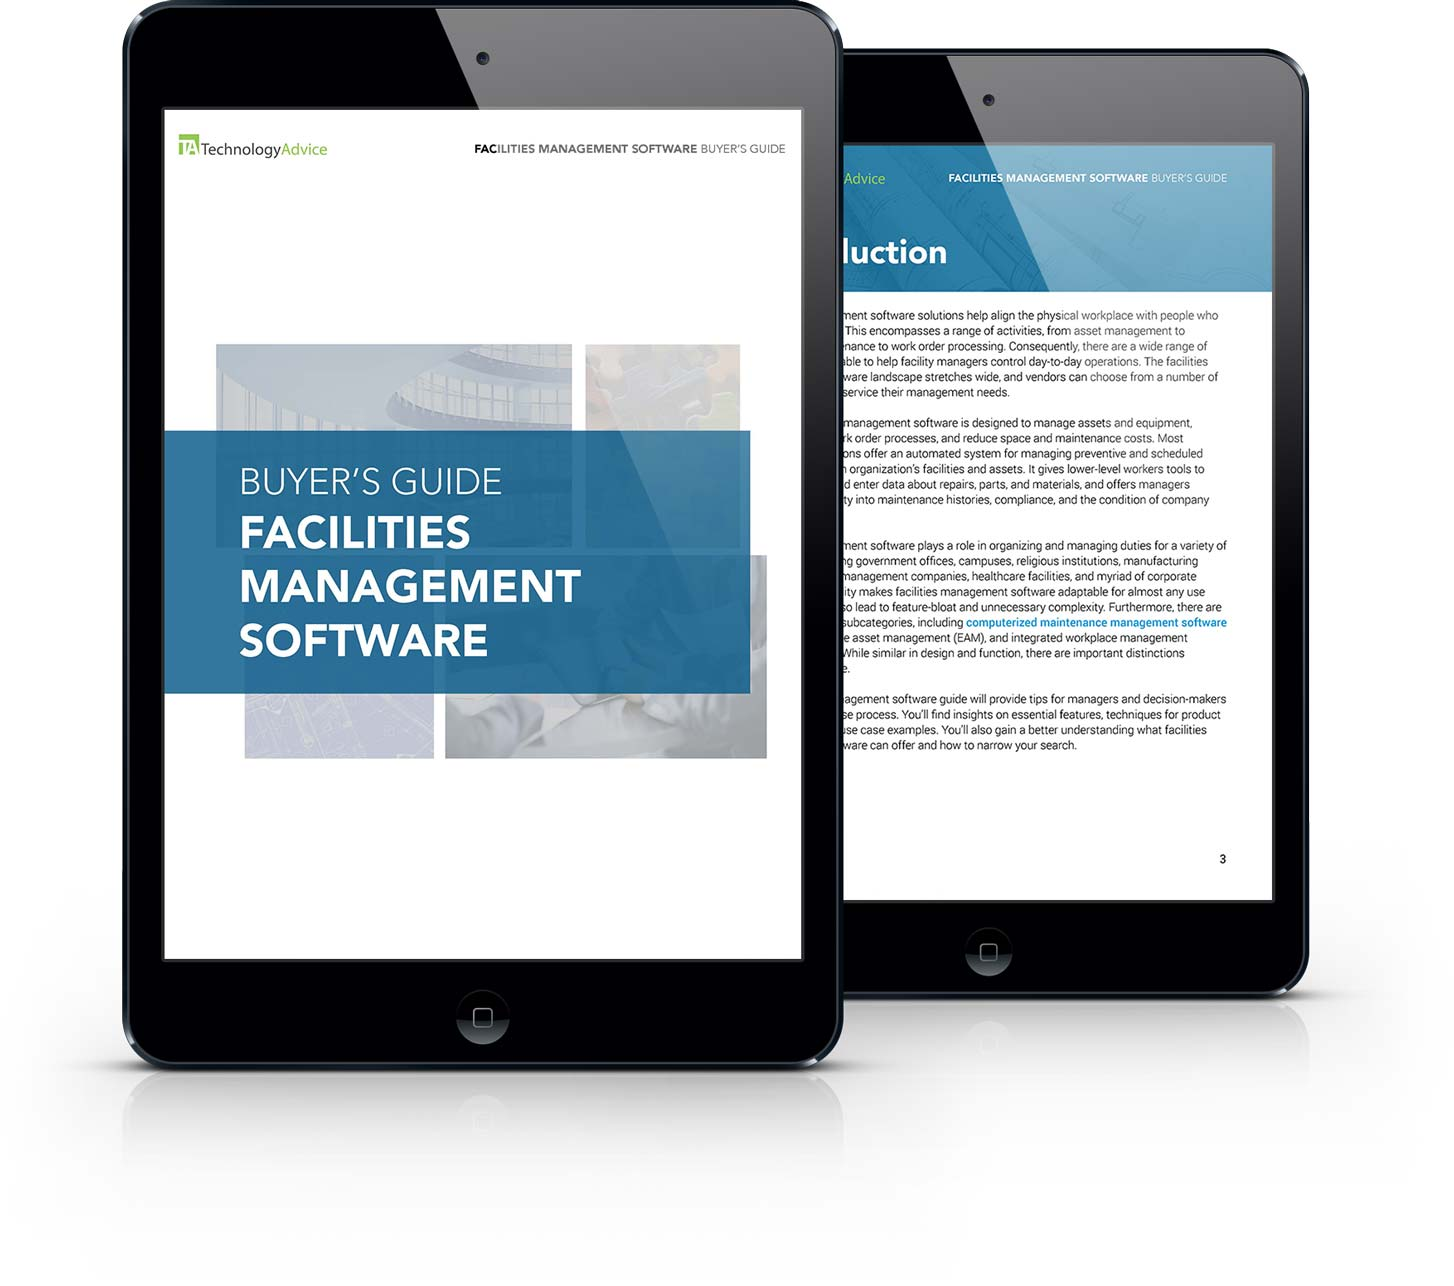 Facilities Management Buyer's Guide ipad